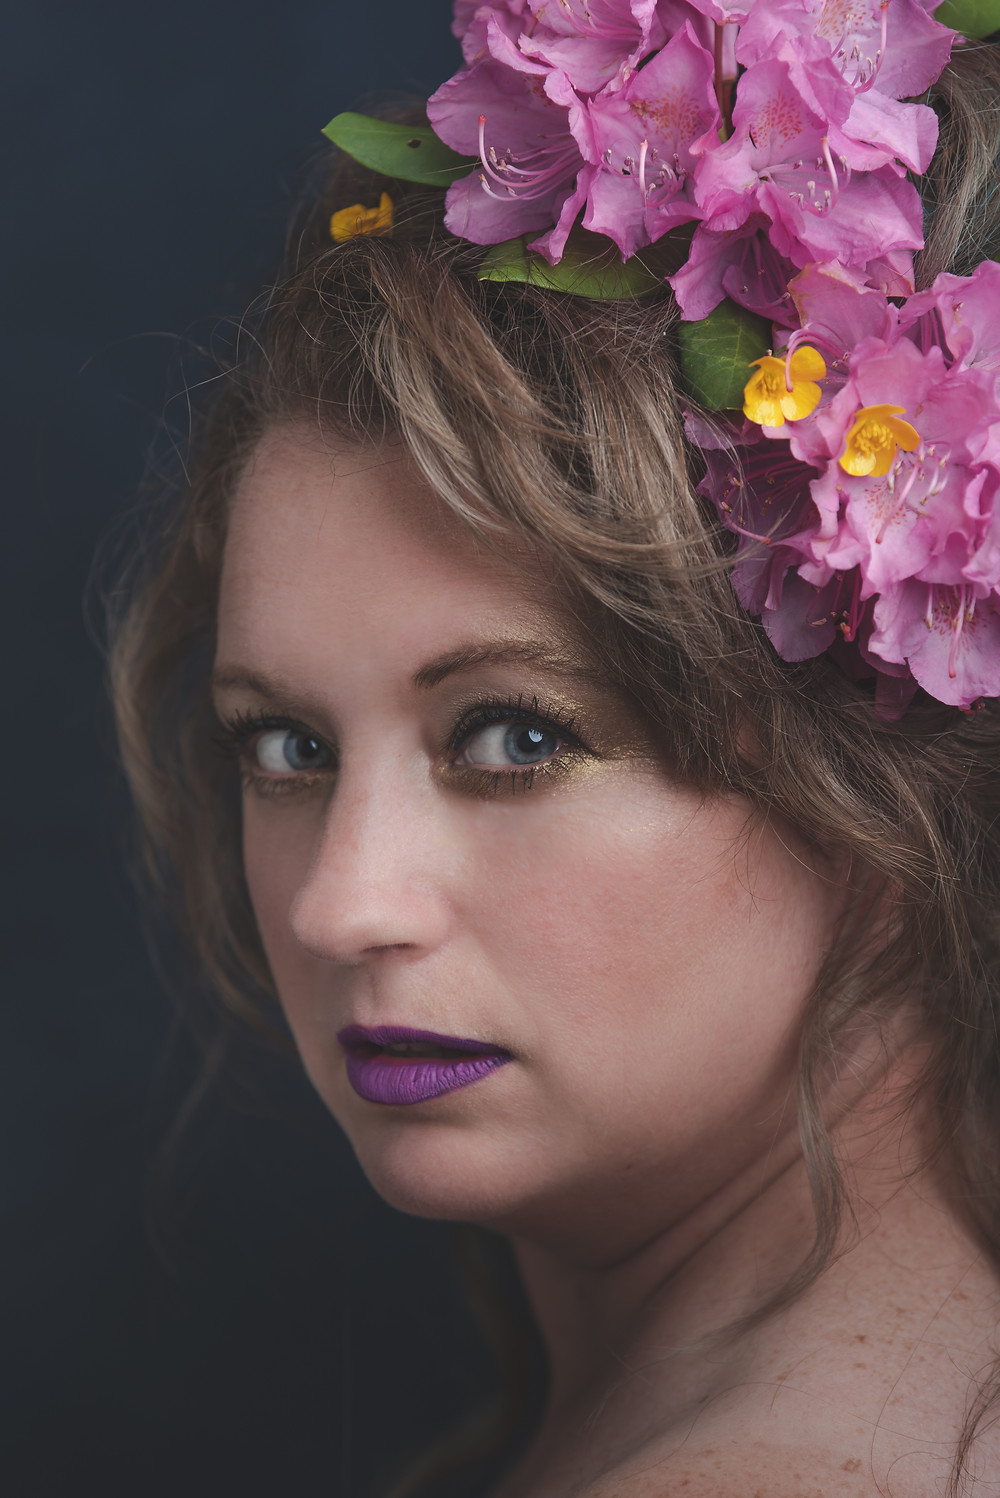 A woman in her 40's takes a color self portrait with rhododendrons in her hair.